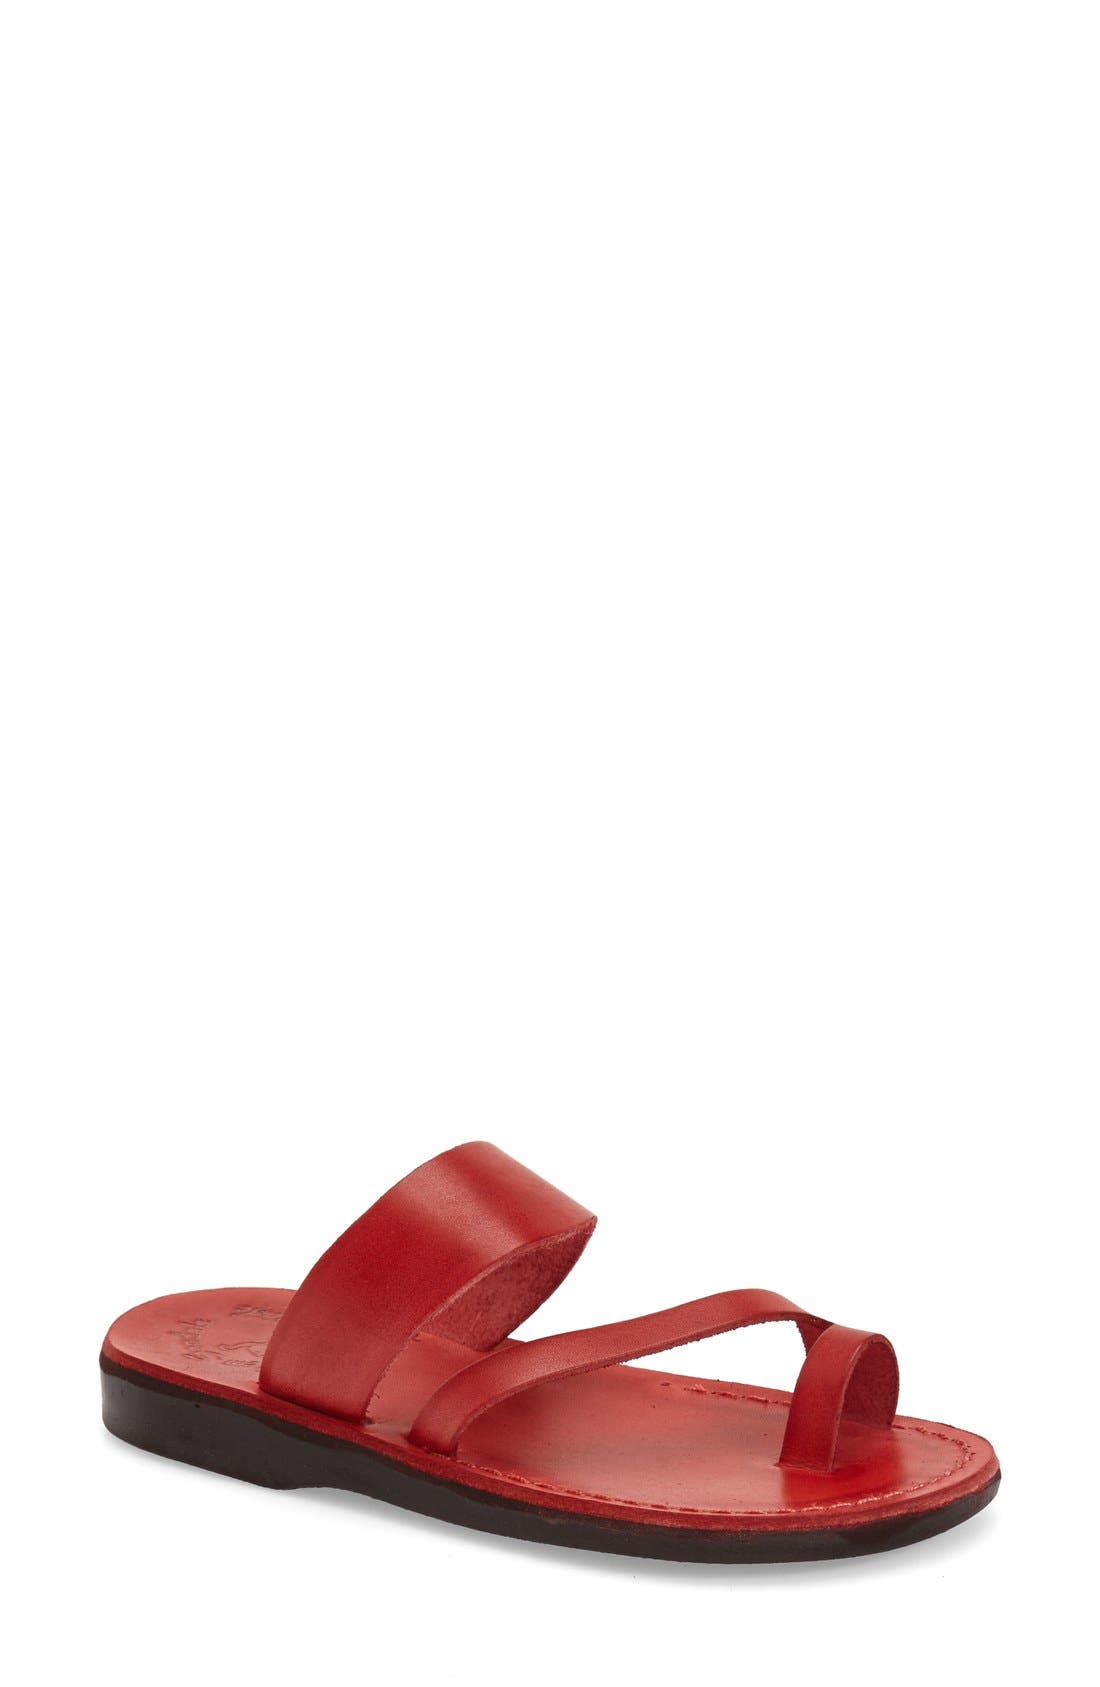 'Zohar' Leather Sandal,                             Main thumbnail 6, color,